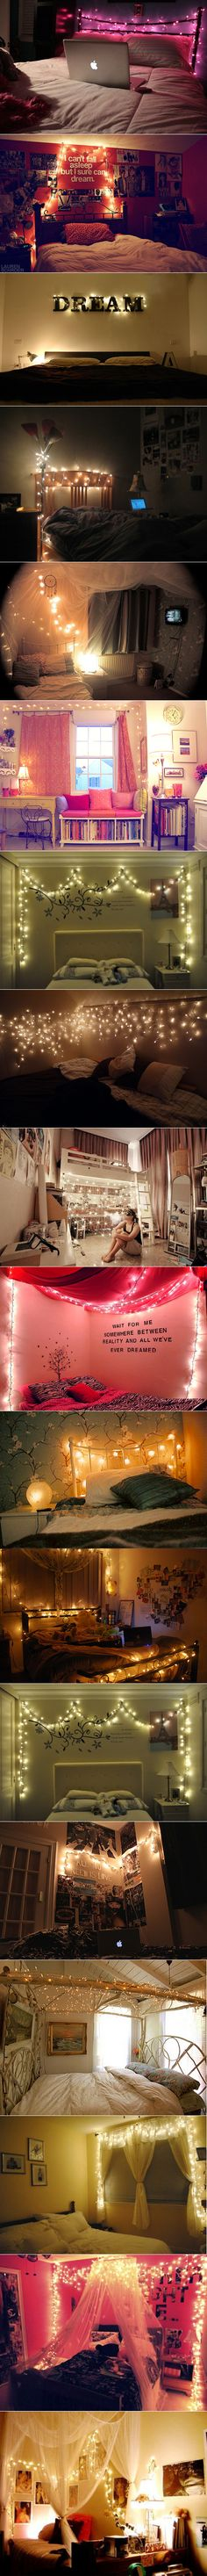 bedroom lights Dorm Lighting, Lighting Ideas, Bedroom Lighting, Lighting Design, Twinkle Lights, Christmas Lights In Bedroom, String Lights In The Bedroom, Room Lights Decor, Room Decorations